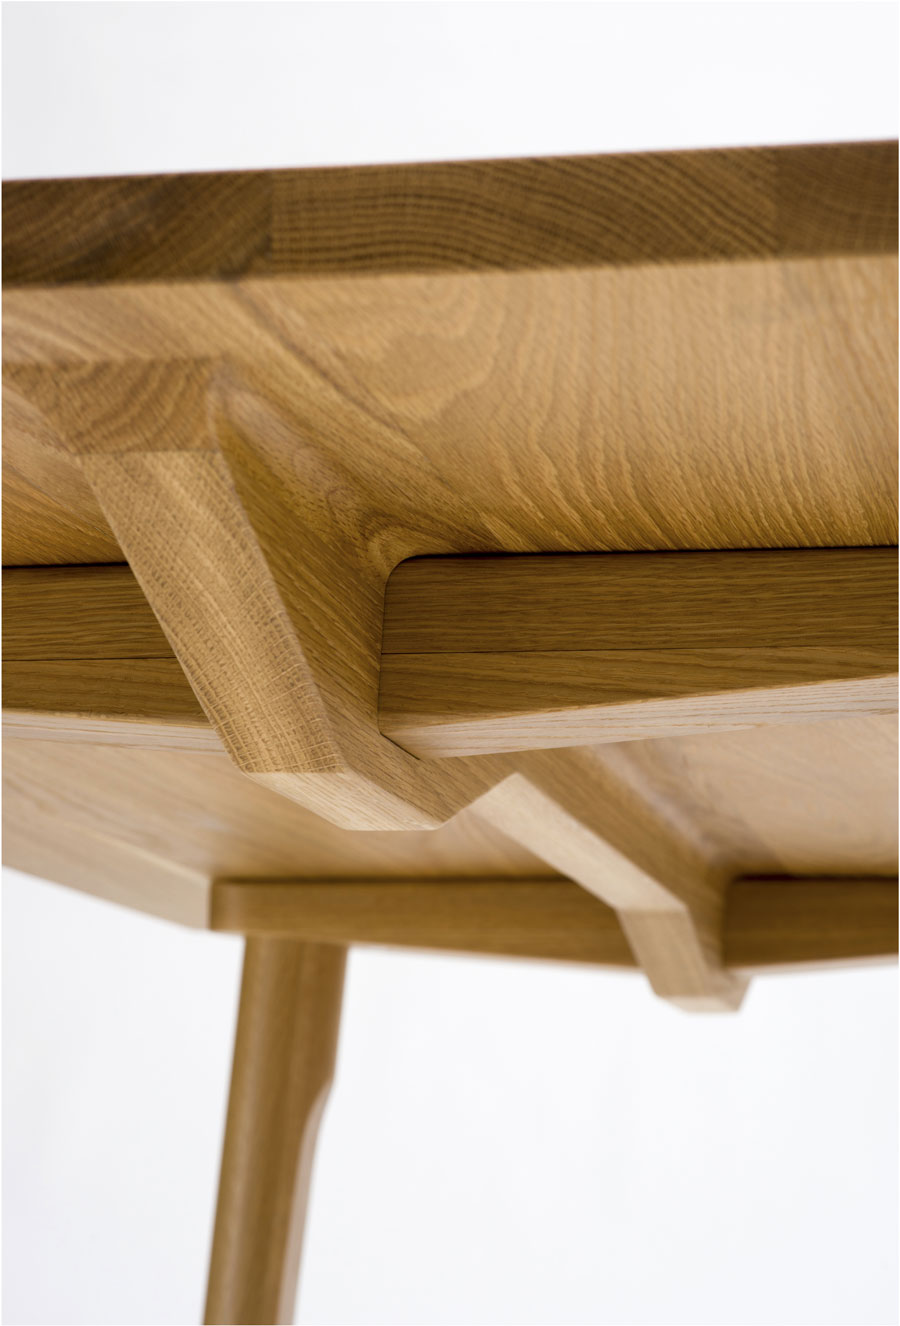 Details of the beam table.